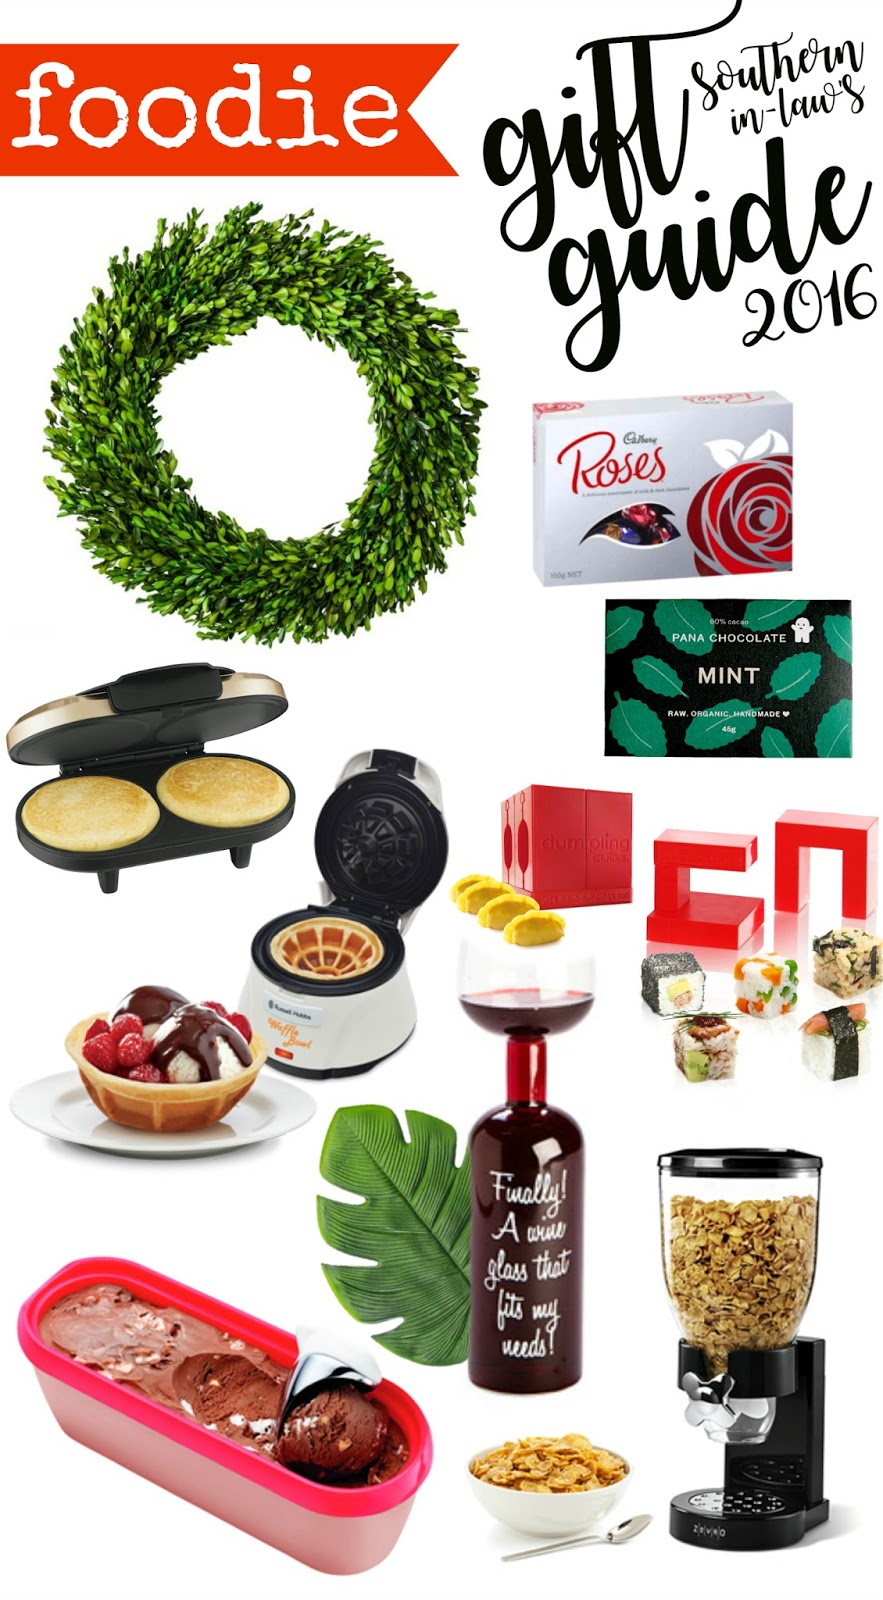 the best gift ideas for foodies 2016 food lovers christmas gift guide gift ideas